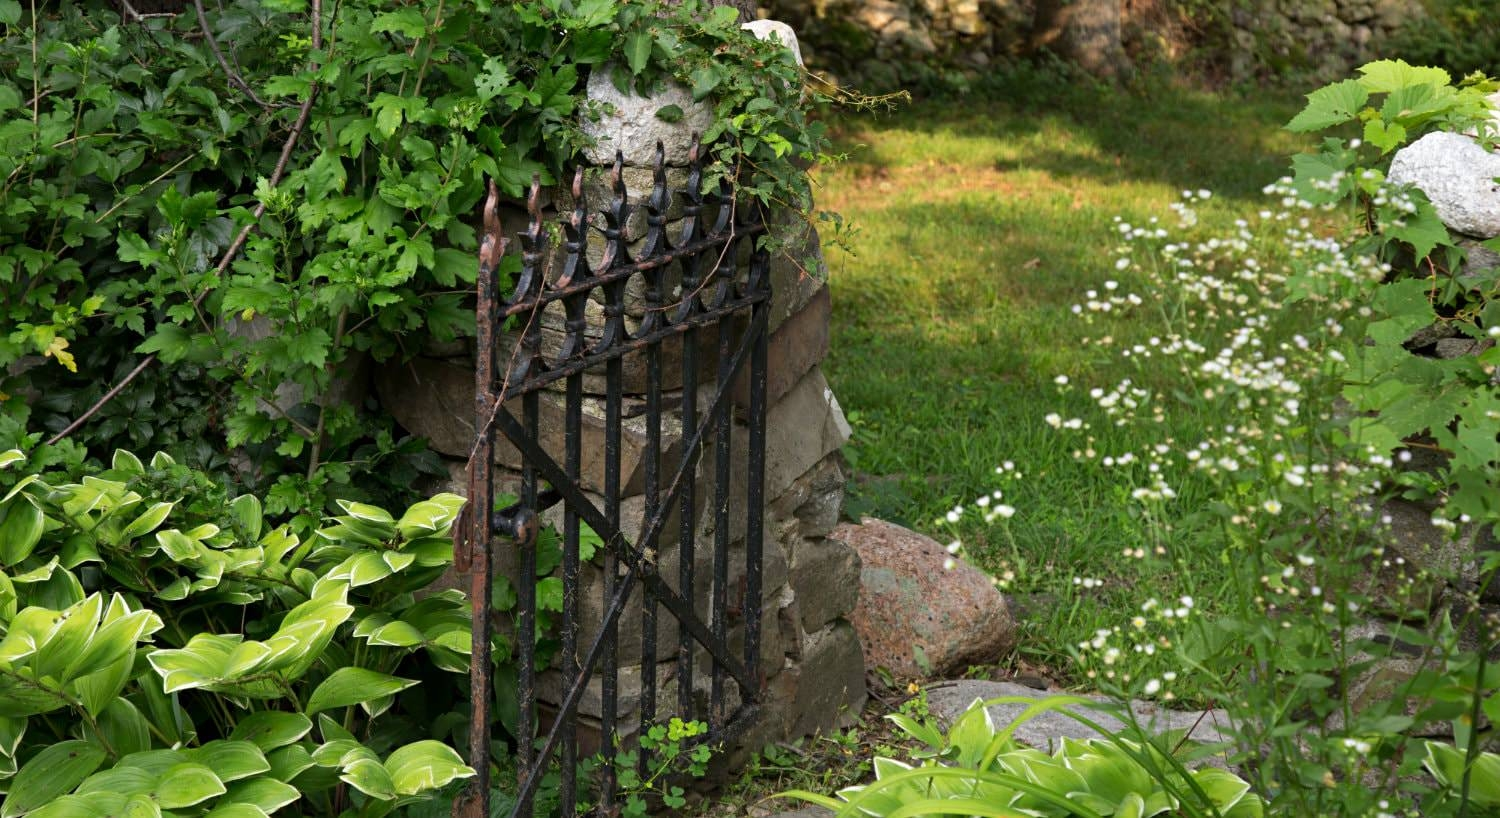 Stone wall with an open black wrought iron gate surrounded by greenery